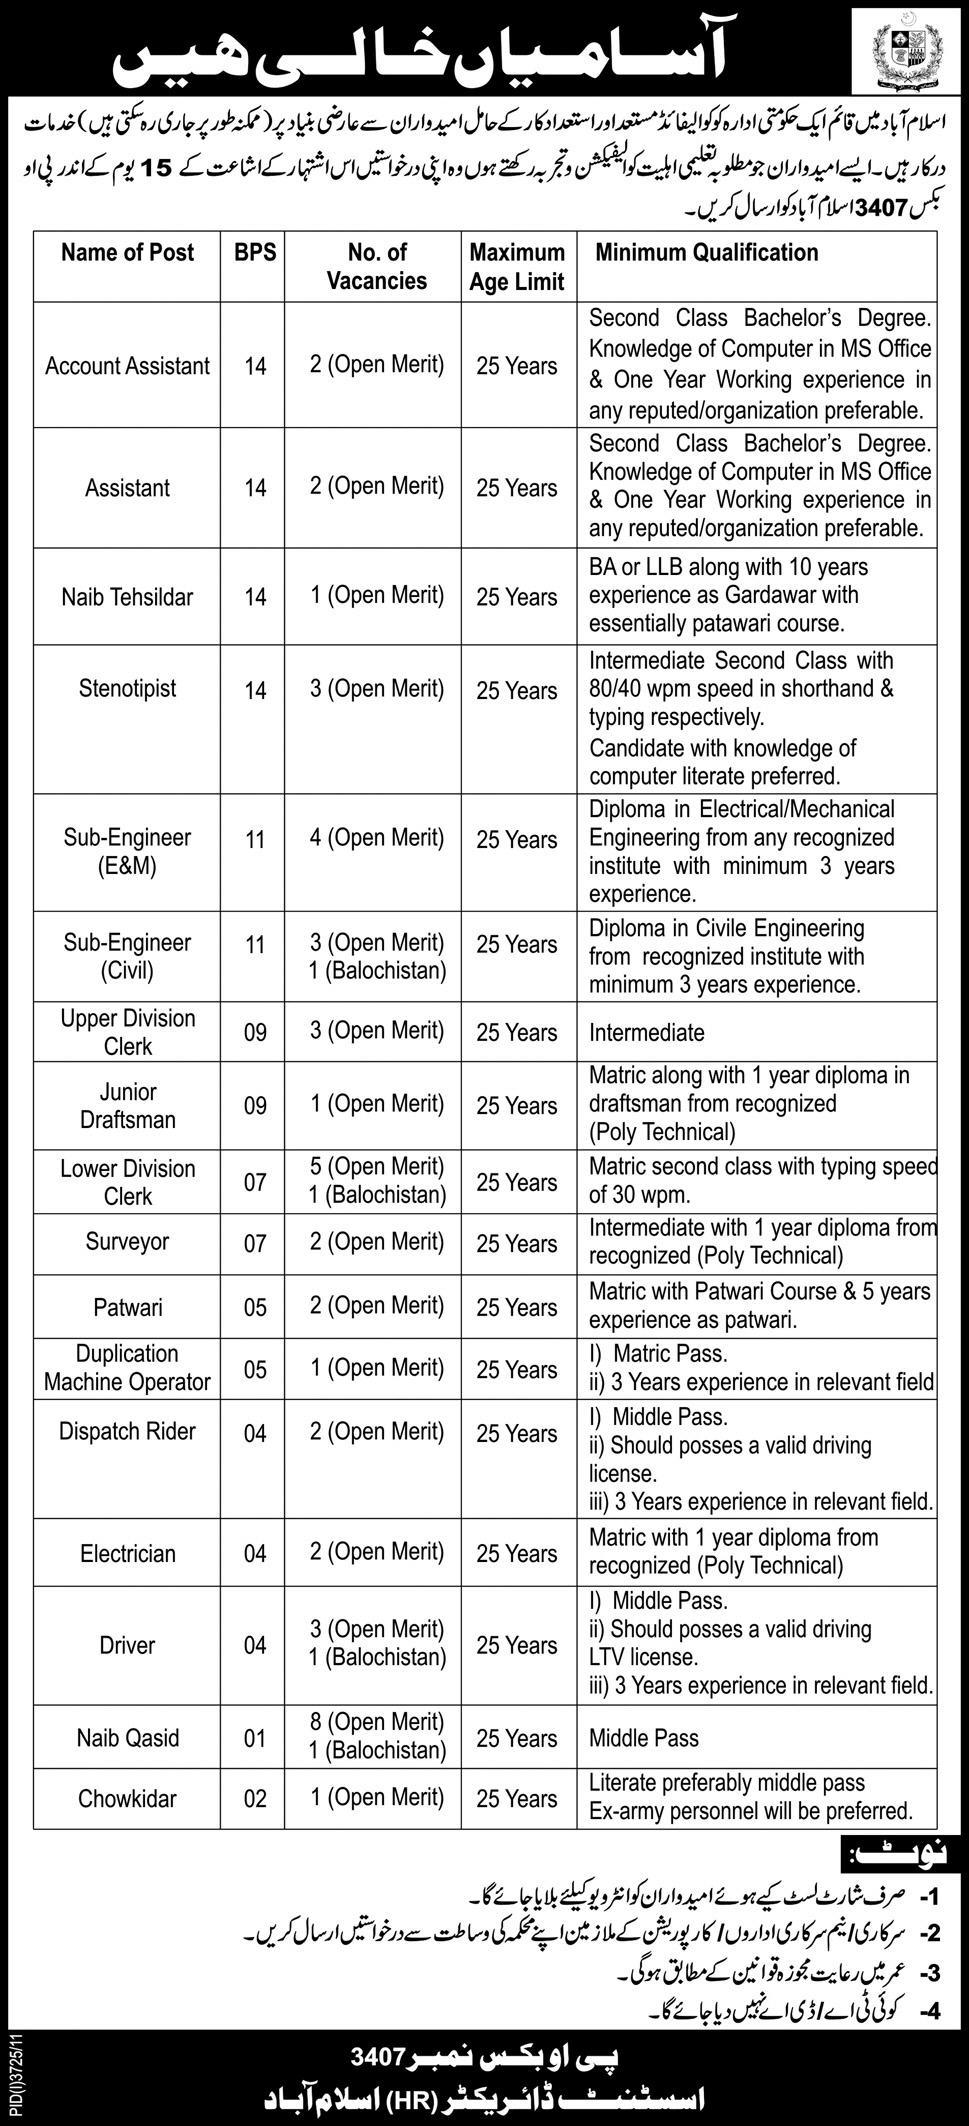 Government jobs in islamabad 18-Feb-2012